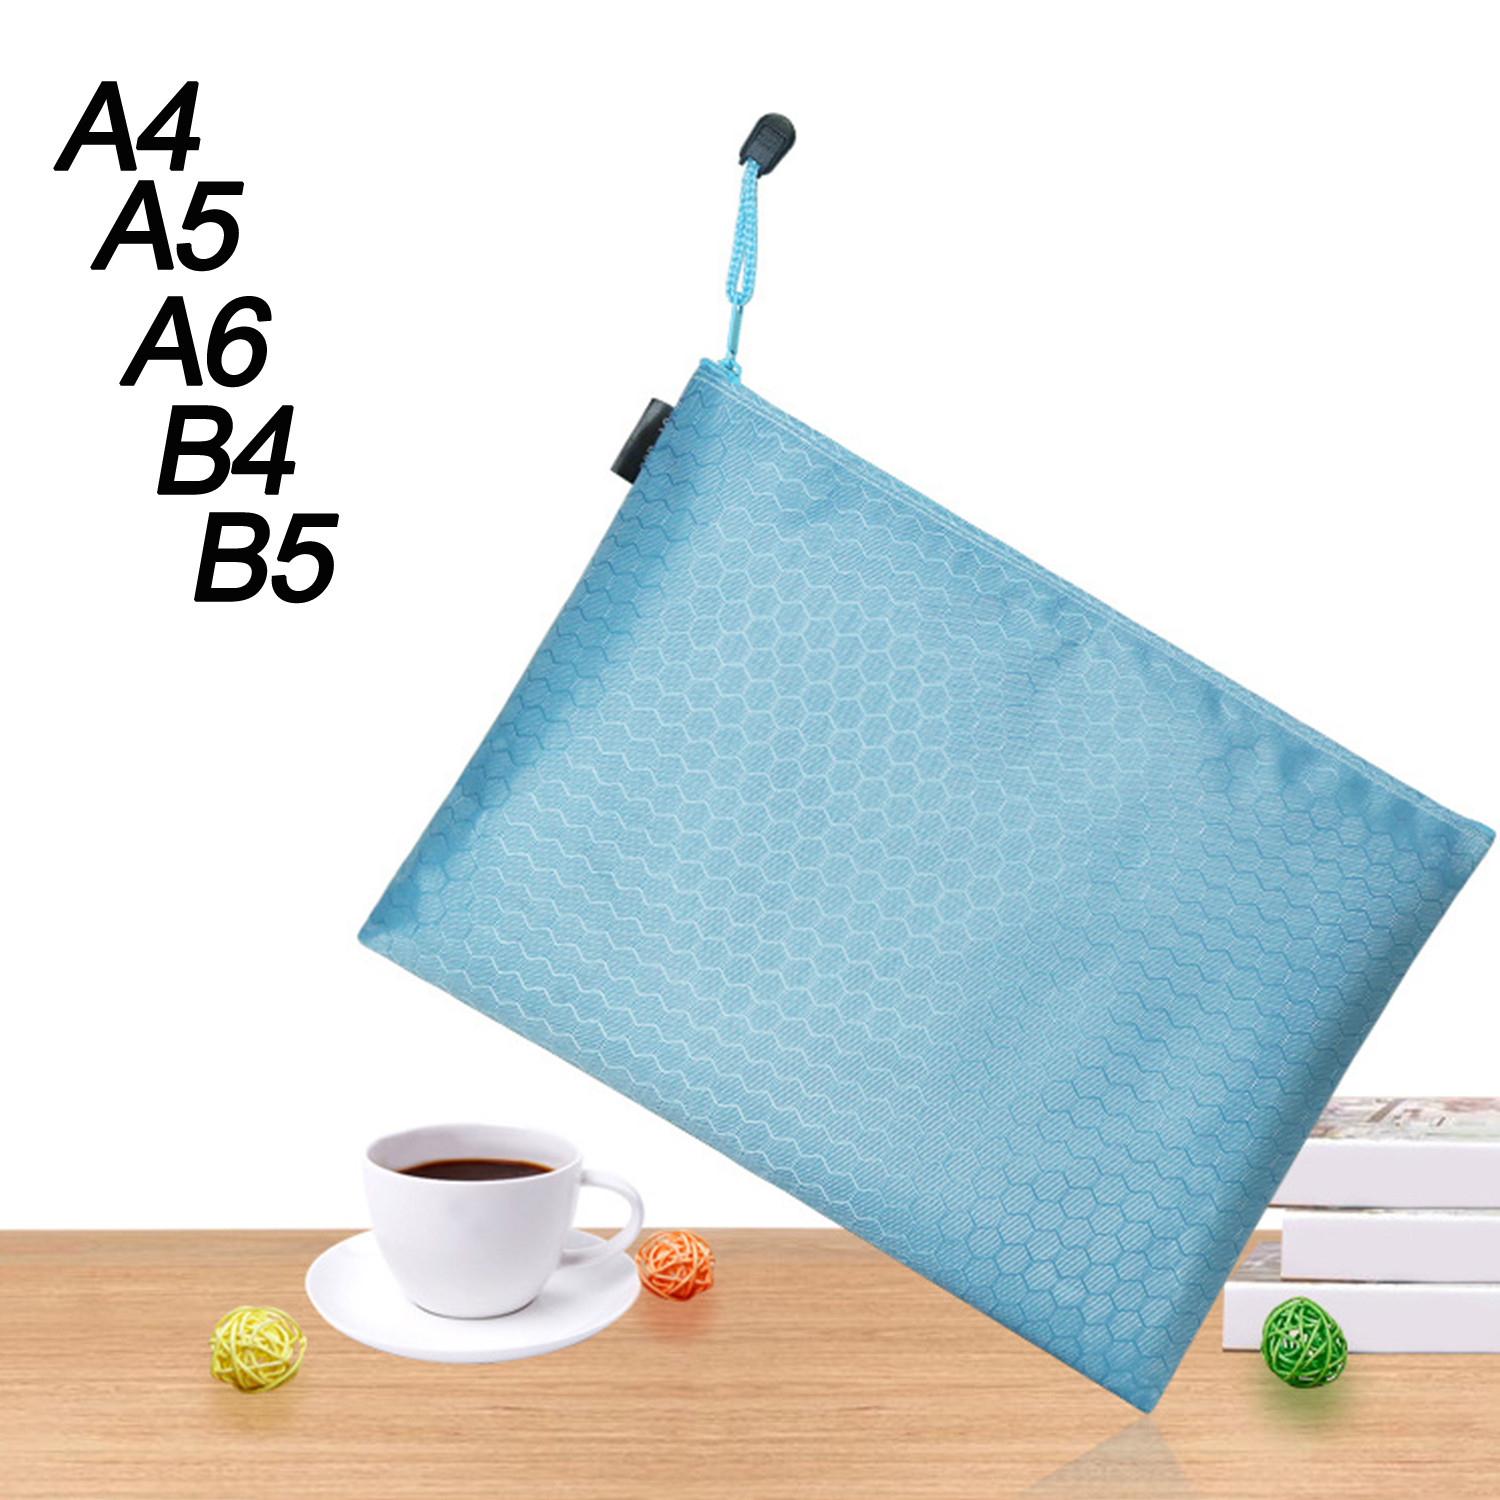 Zipper Paper File Folder Pouch Colorful Single Layer Canvas Cloth Book Pencil Pen Case Bag File Document Bags Supplies